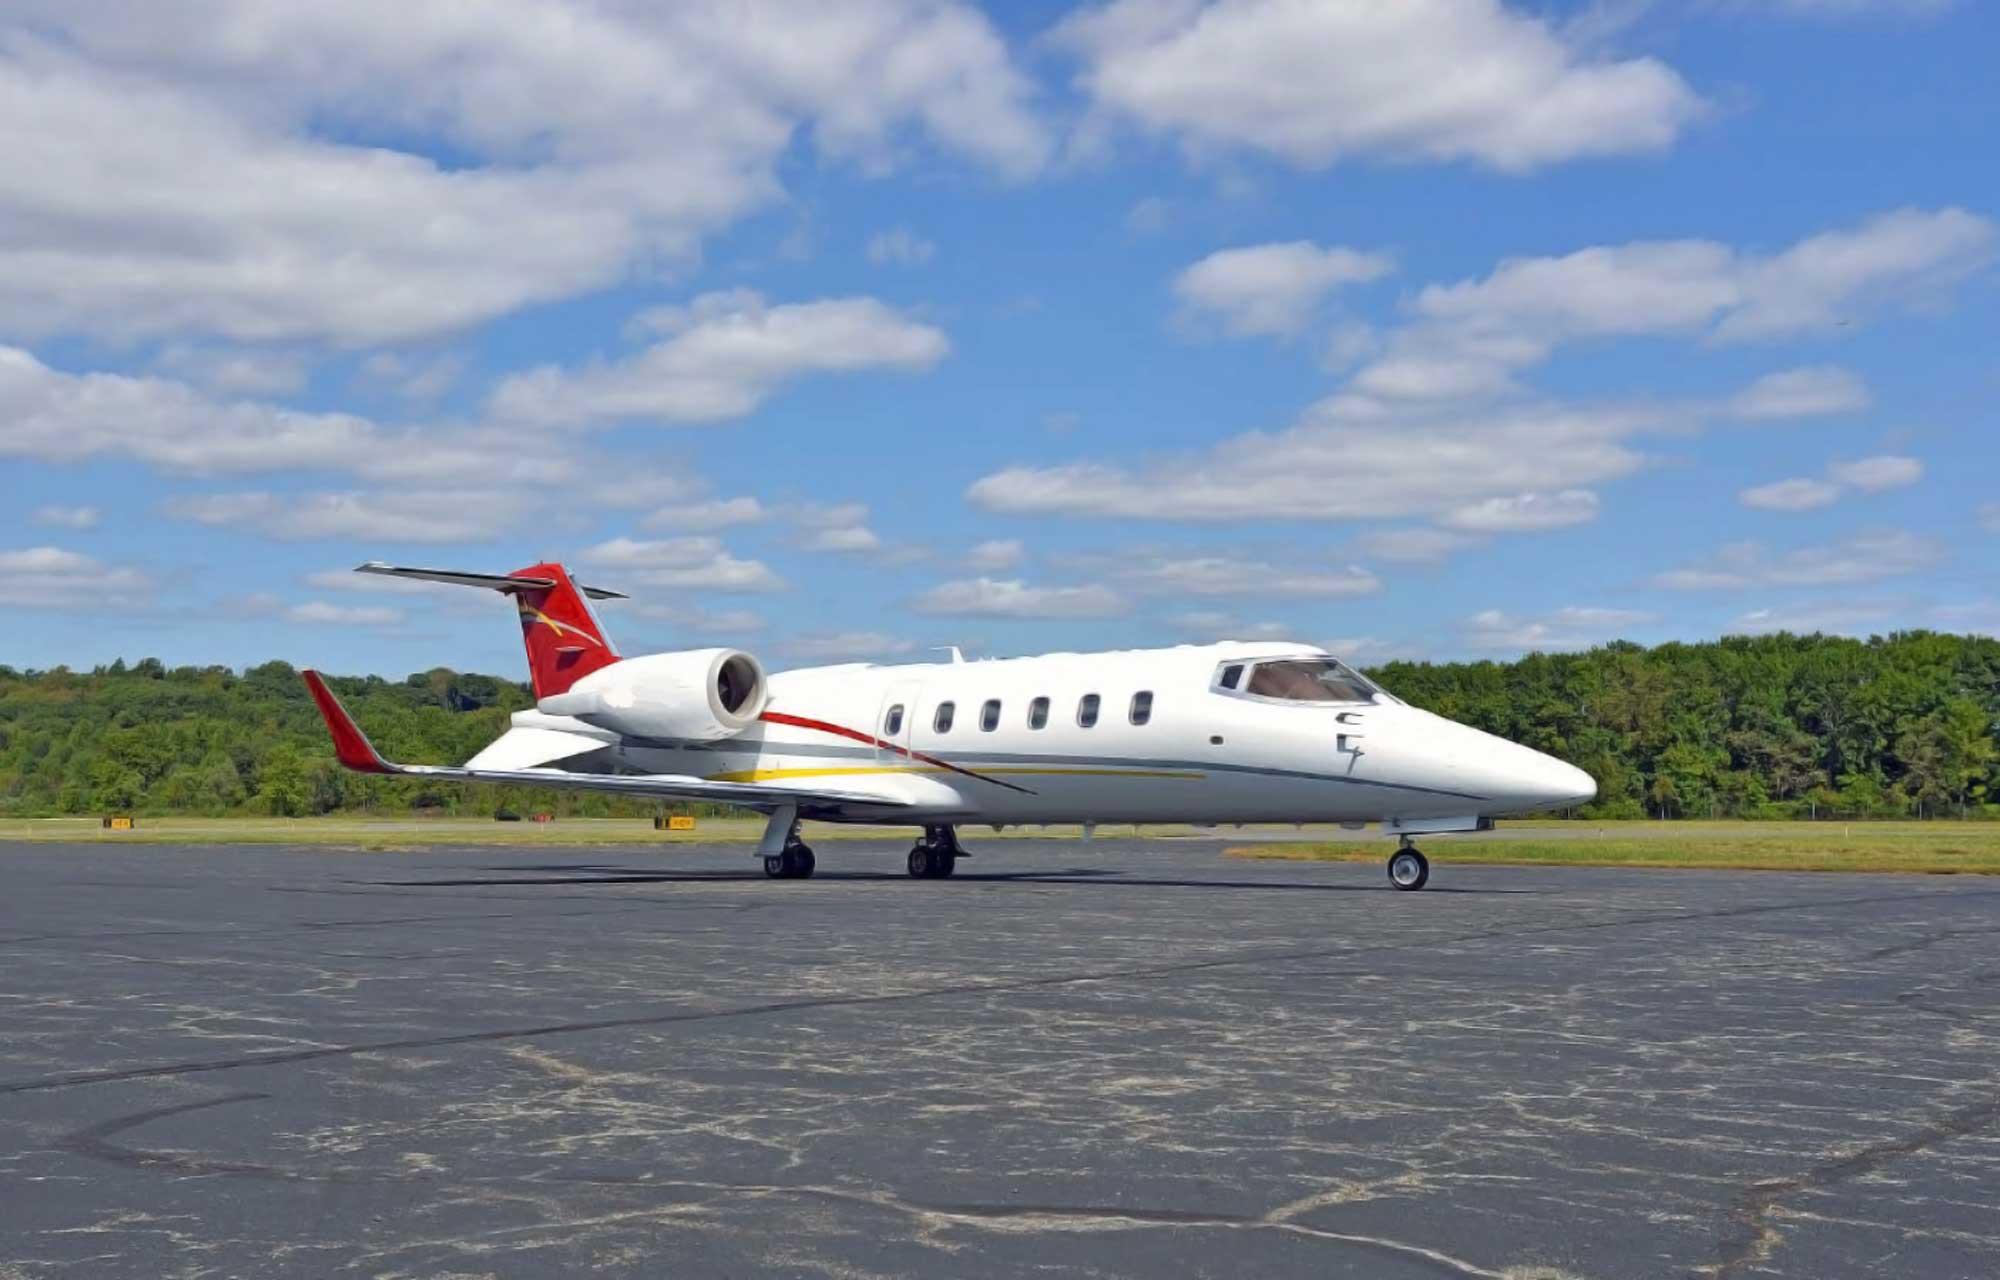 Related model: Bombardier Learjet 60XR